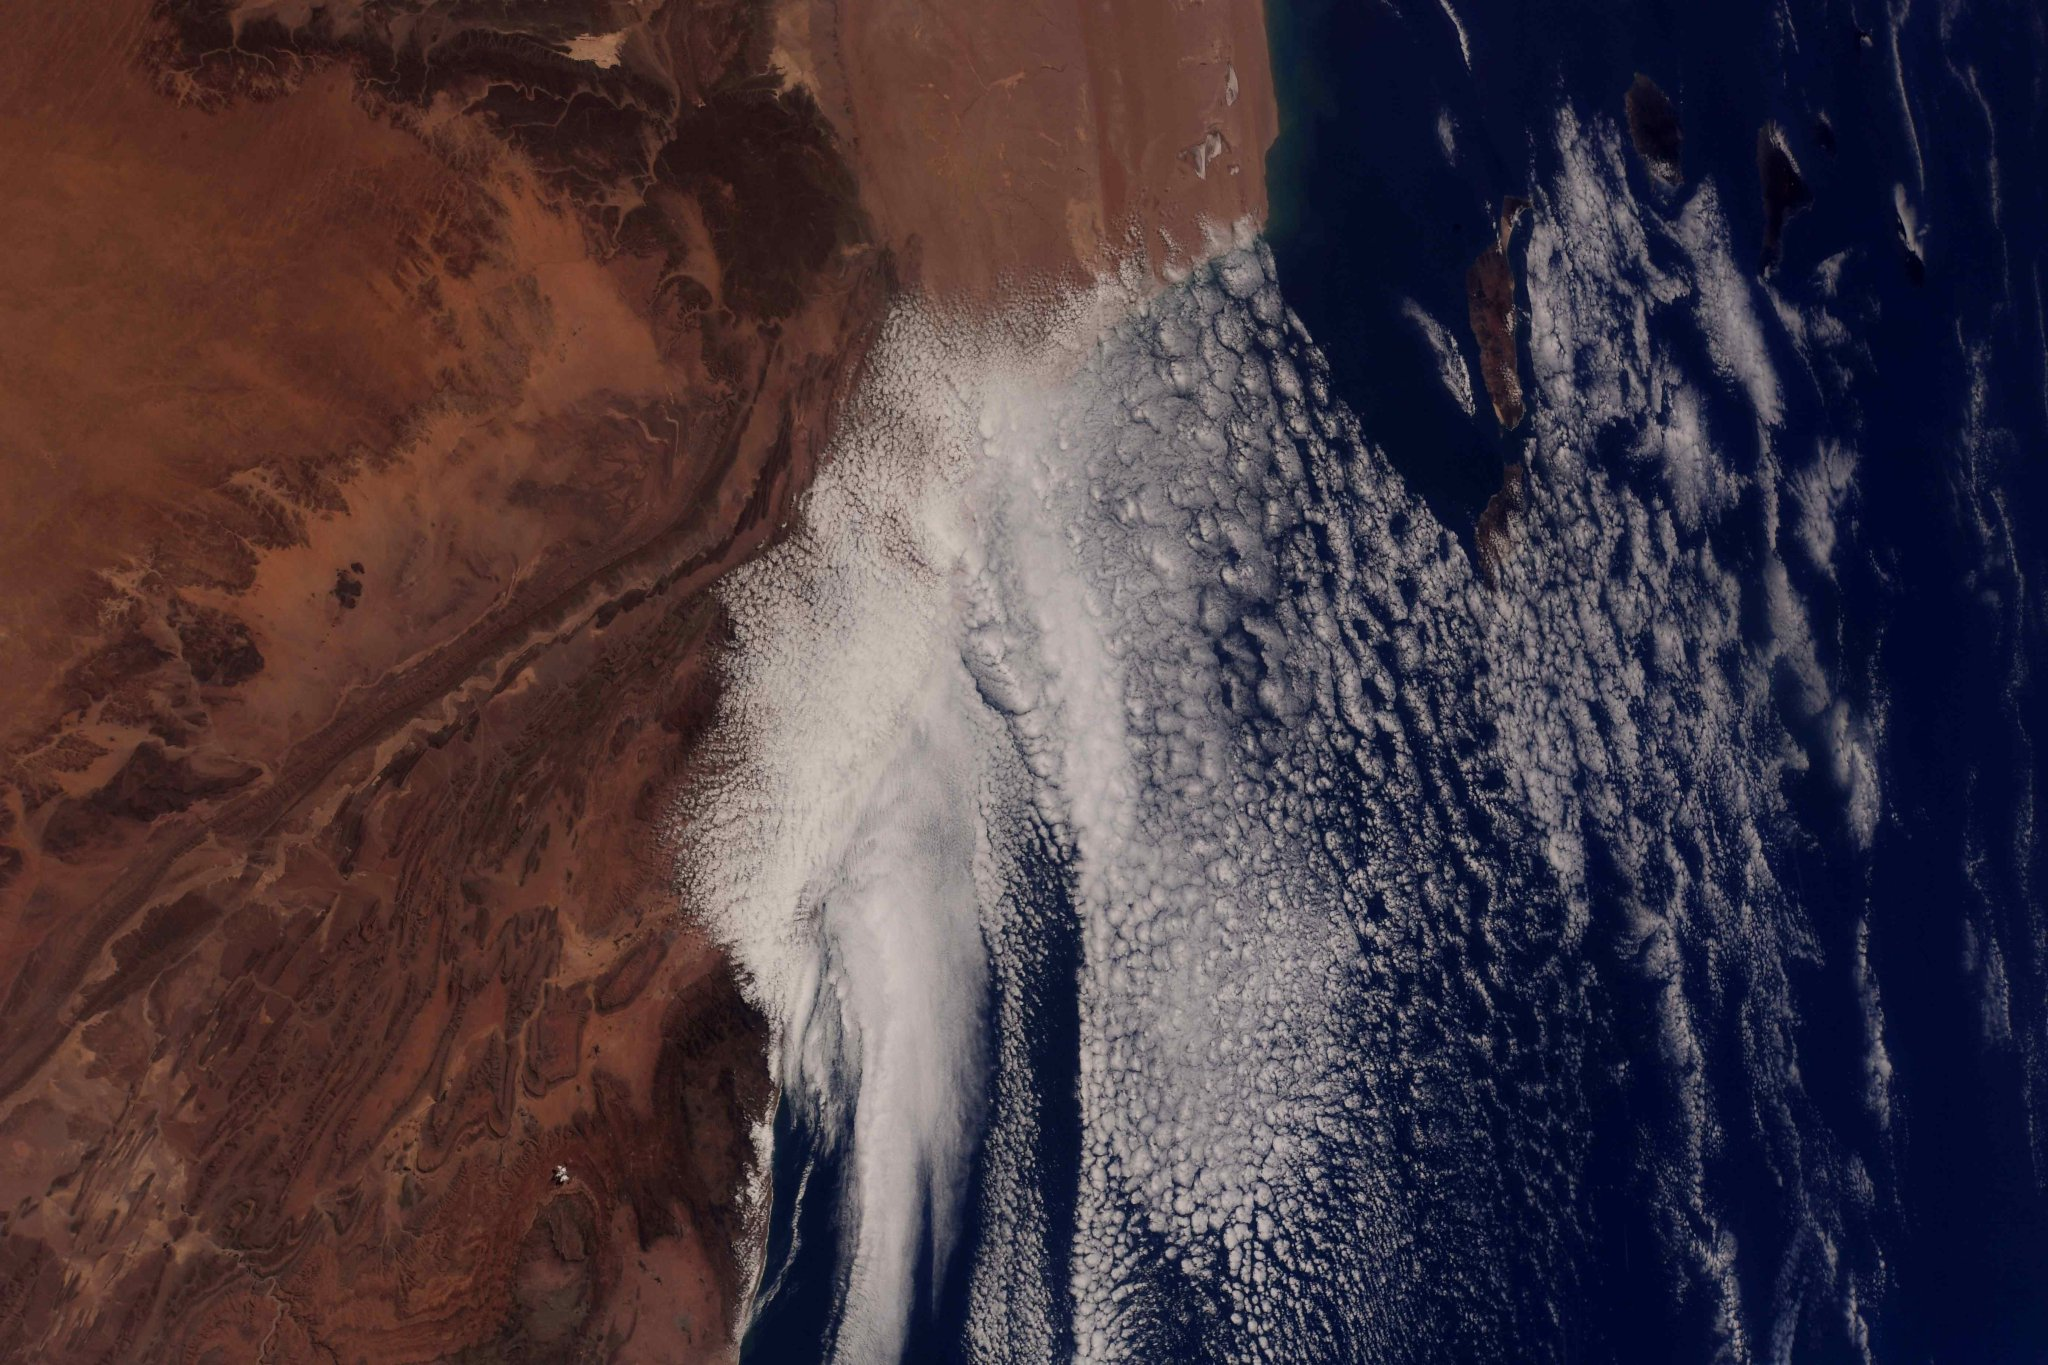 #Morocco & the Canary Islands. ?Then there is the sky, compared to which all other skies seem faint-hearted efforts.? -Paul Bowles on the Sahara (Photo & Caption: Ricky Arnold / NASA)